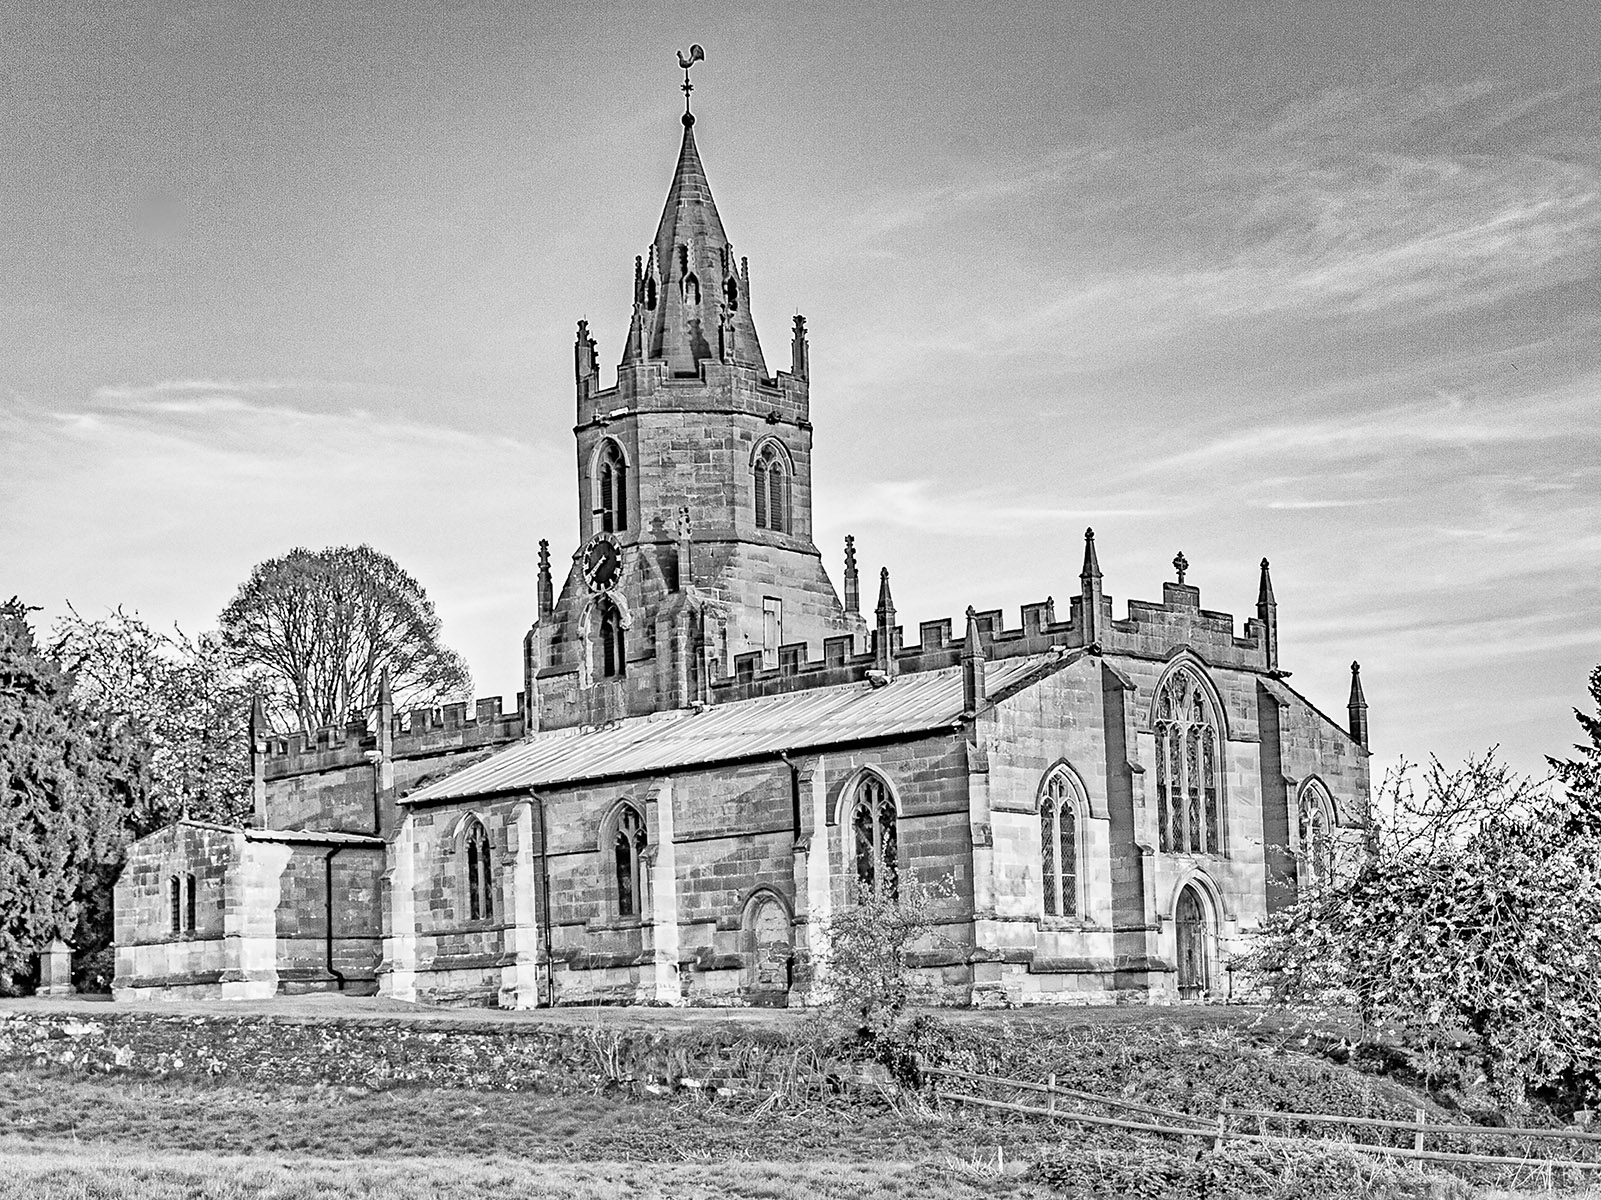 tong-church-by-roy-backhouse